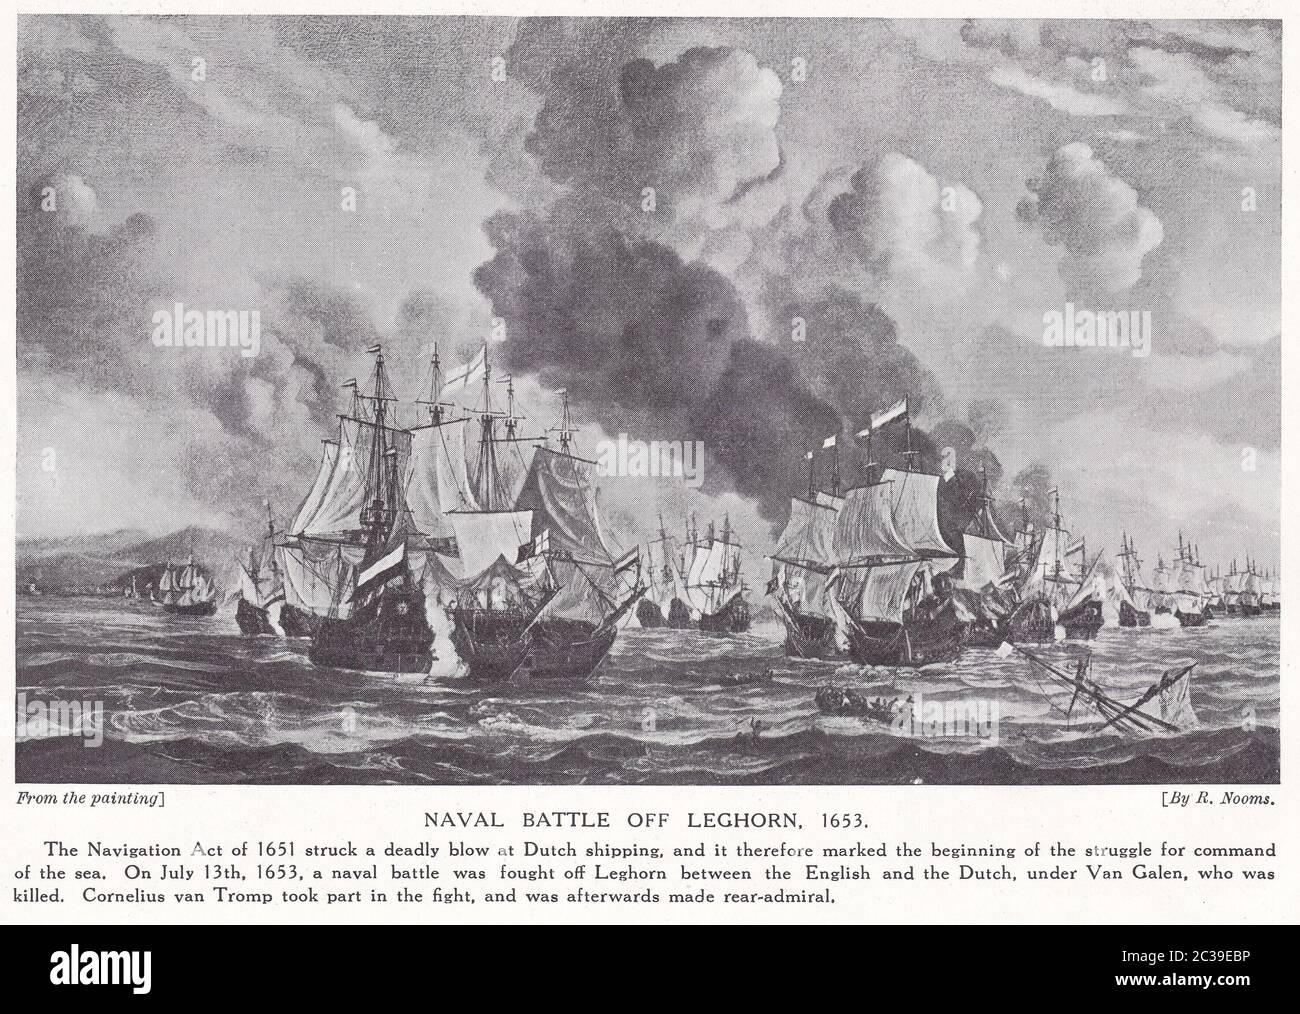 Naval Battle off Leghorn, 1653 - painting by R. Nooms. Stock Photo